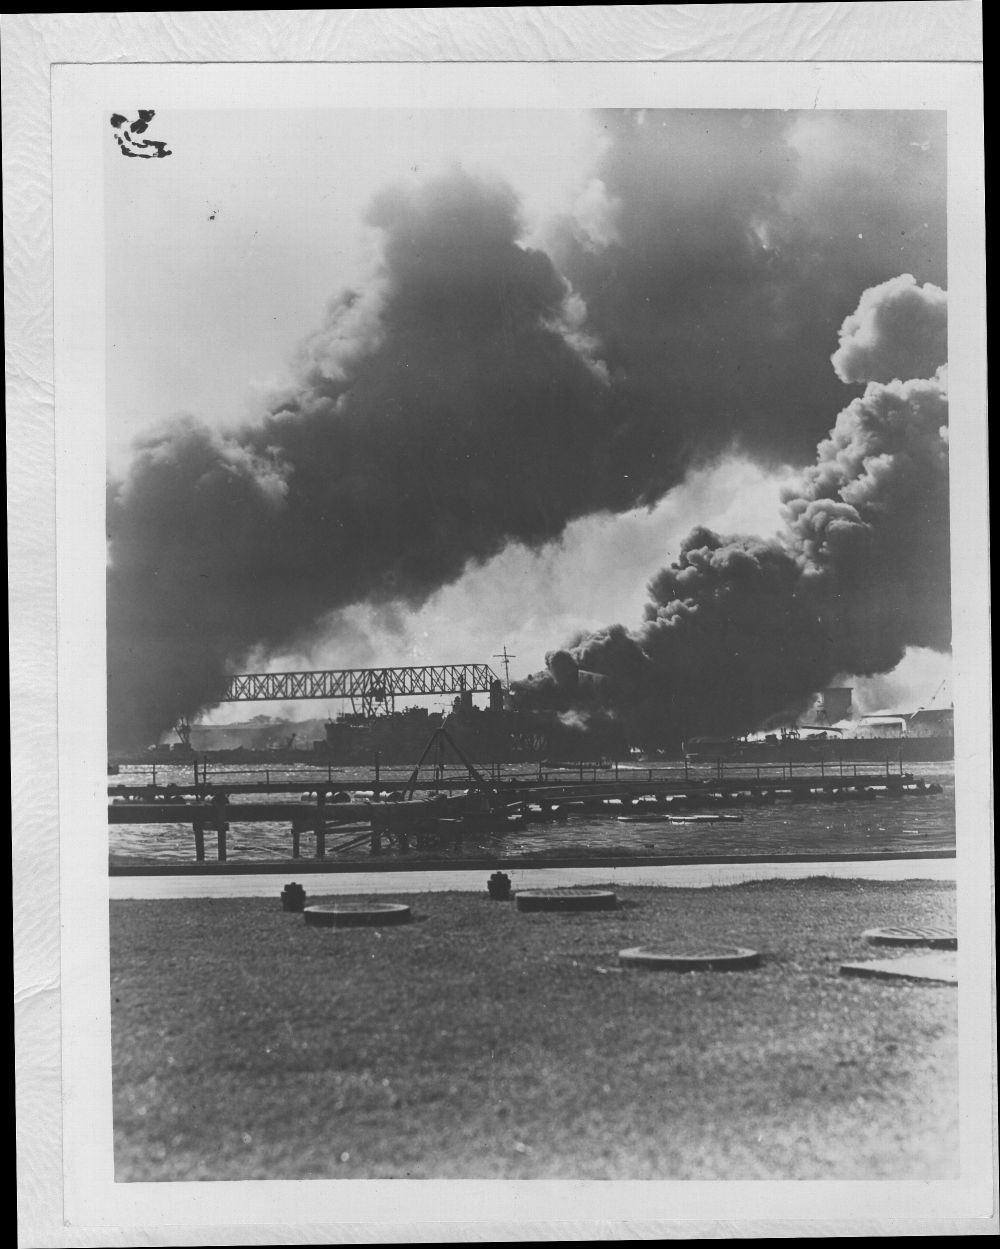 Attack on Pearl Harbor, Hawaii - Destroyers USS Shaw and USS Downs immediately after the bombing.